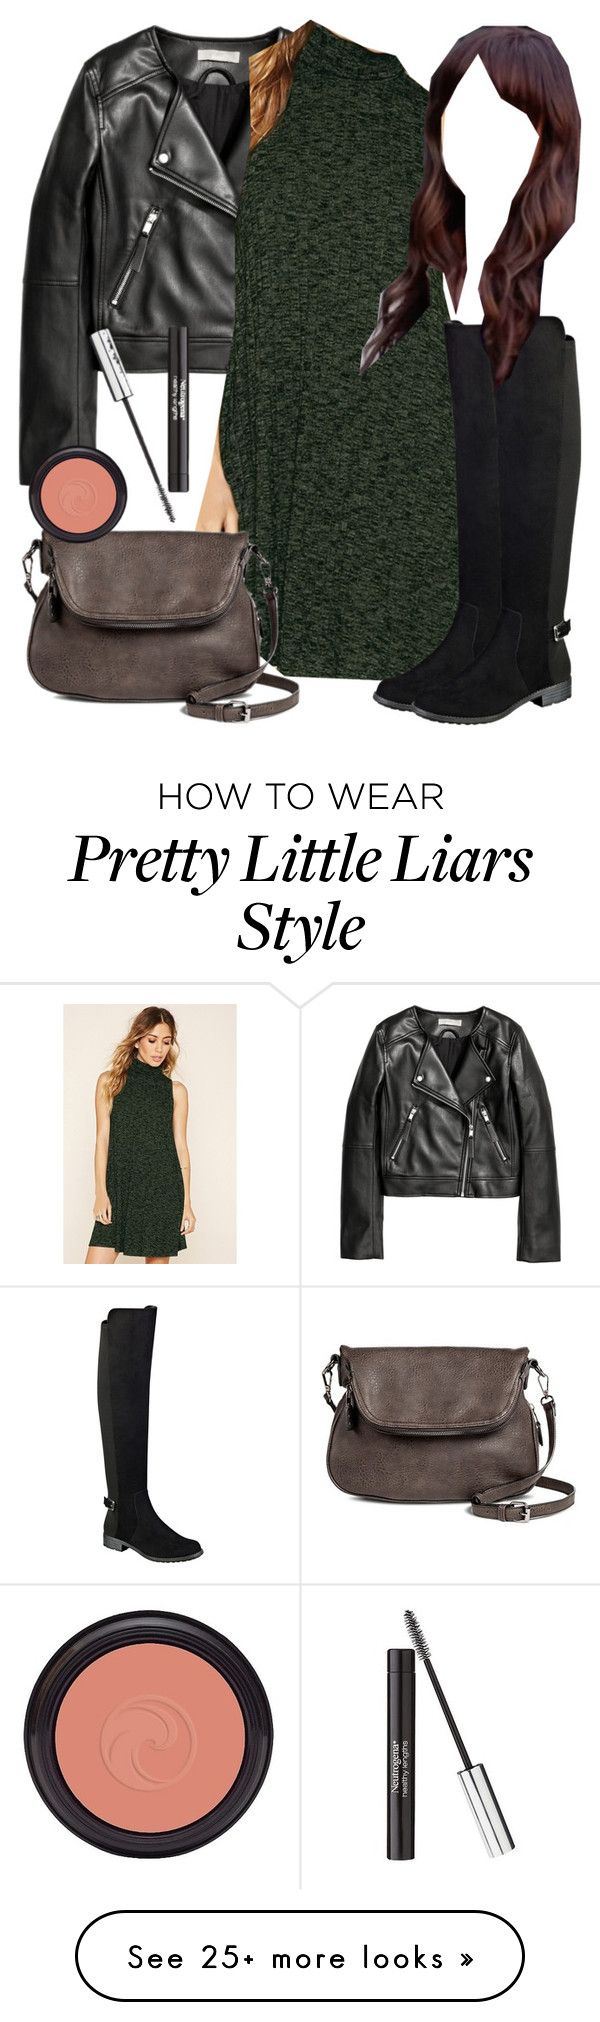 """Spencer Hastings inspired outfit with a leather jacket"" by liarsstyle on Polyvore featuring Forever 21, Liz Claiborne, Moda Luxe, Neutrogena, date, weekend, college and WF"